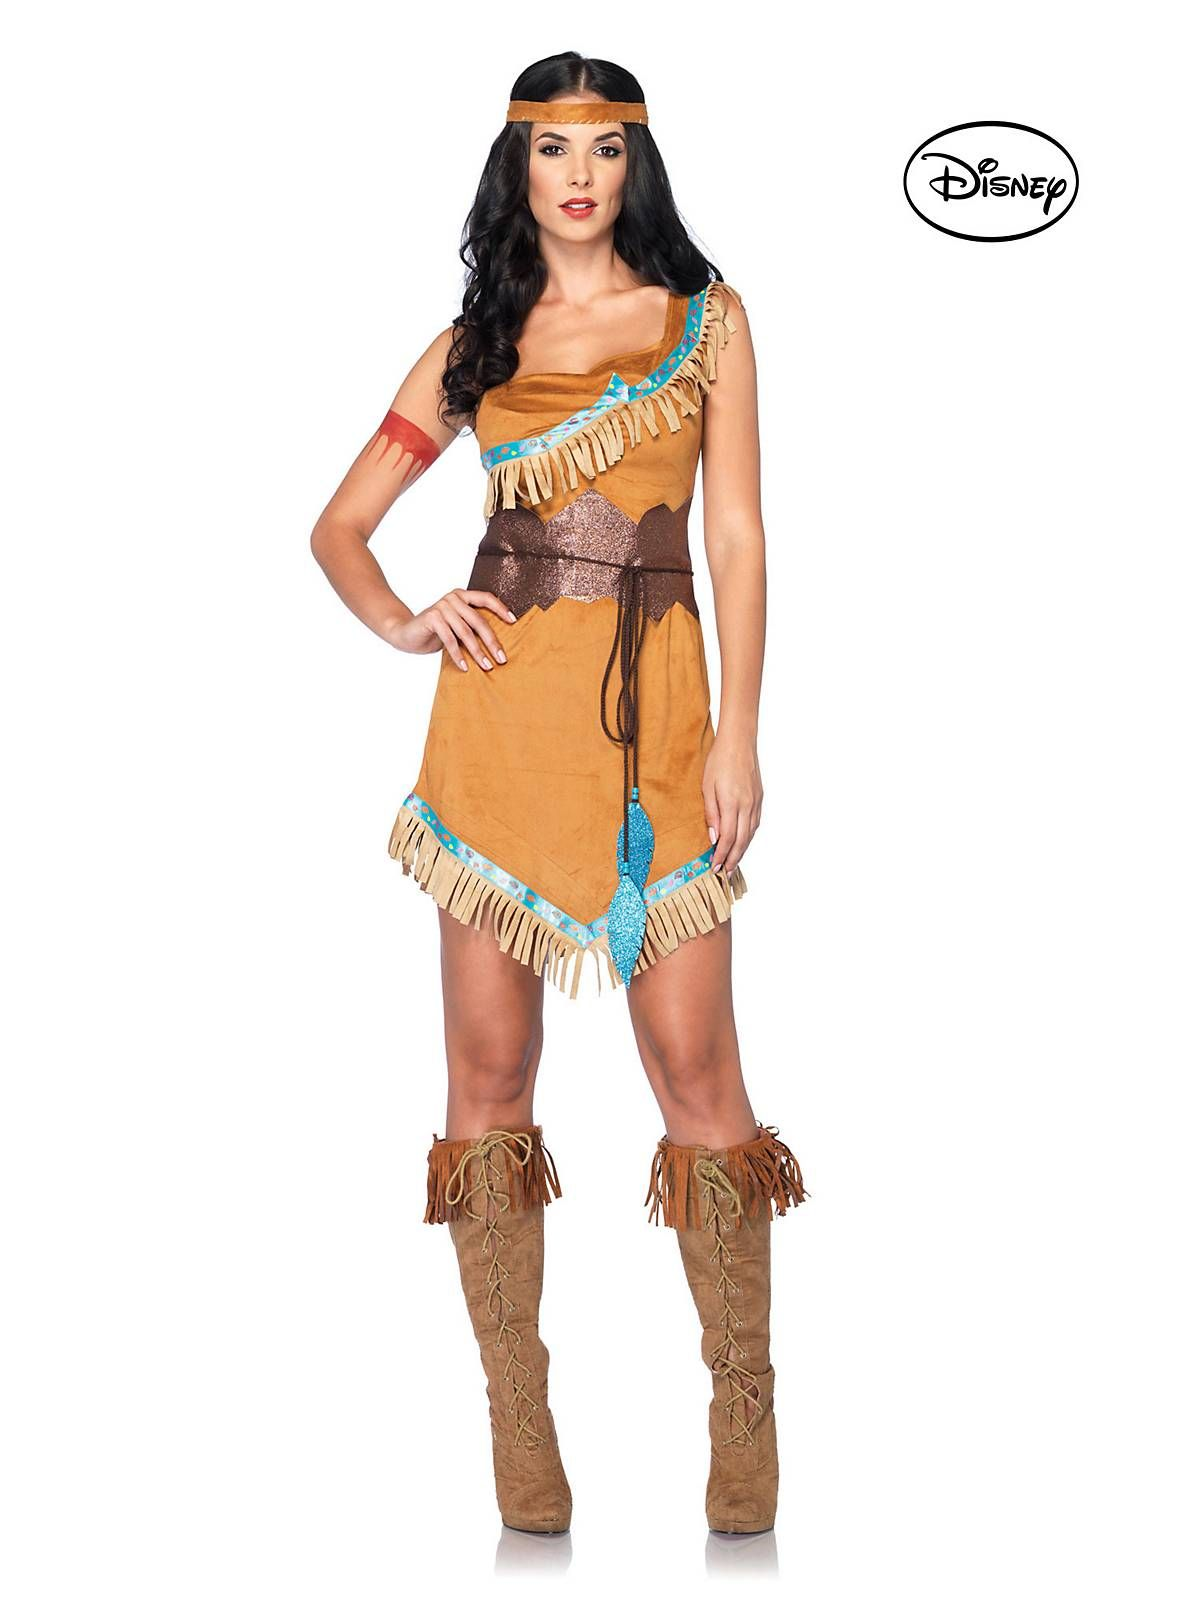 Princess Pocahontas Costume | Cheap Disney Princess Costumes for Adults  sc 1 st  Pinterest & Adult Pocahontas Deluxe Disney Costume | Pocahontas costume ...